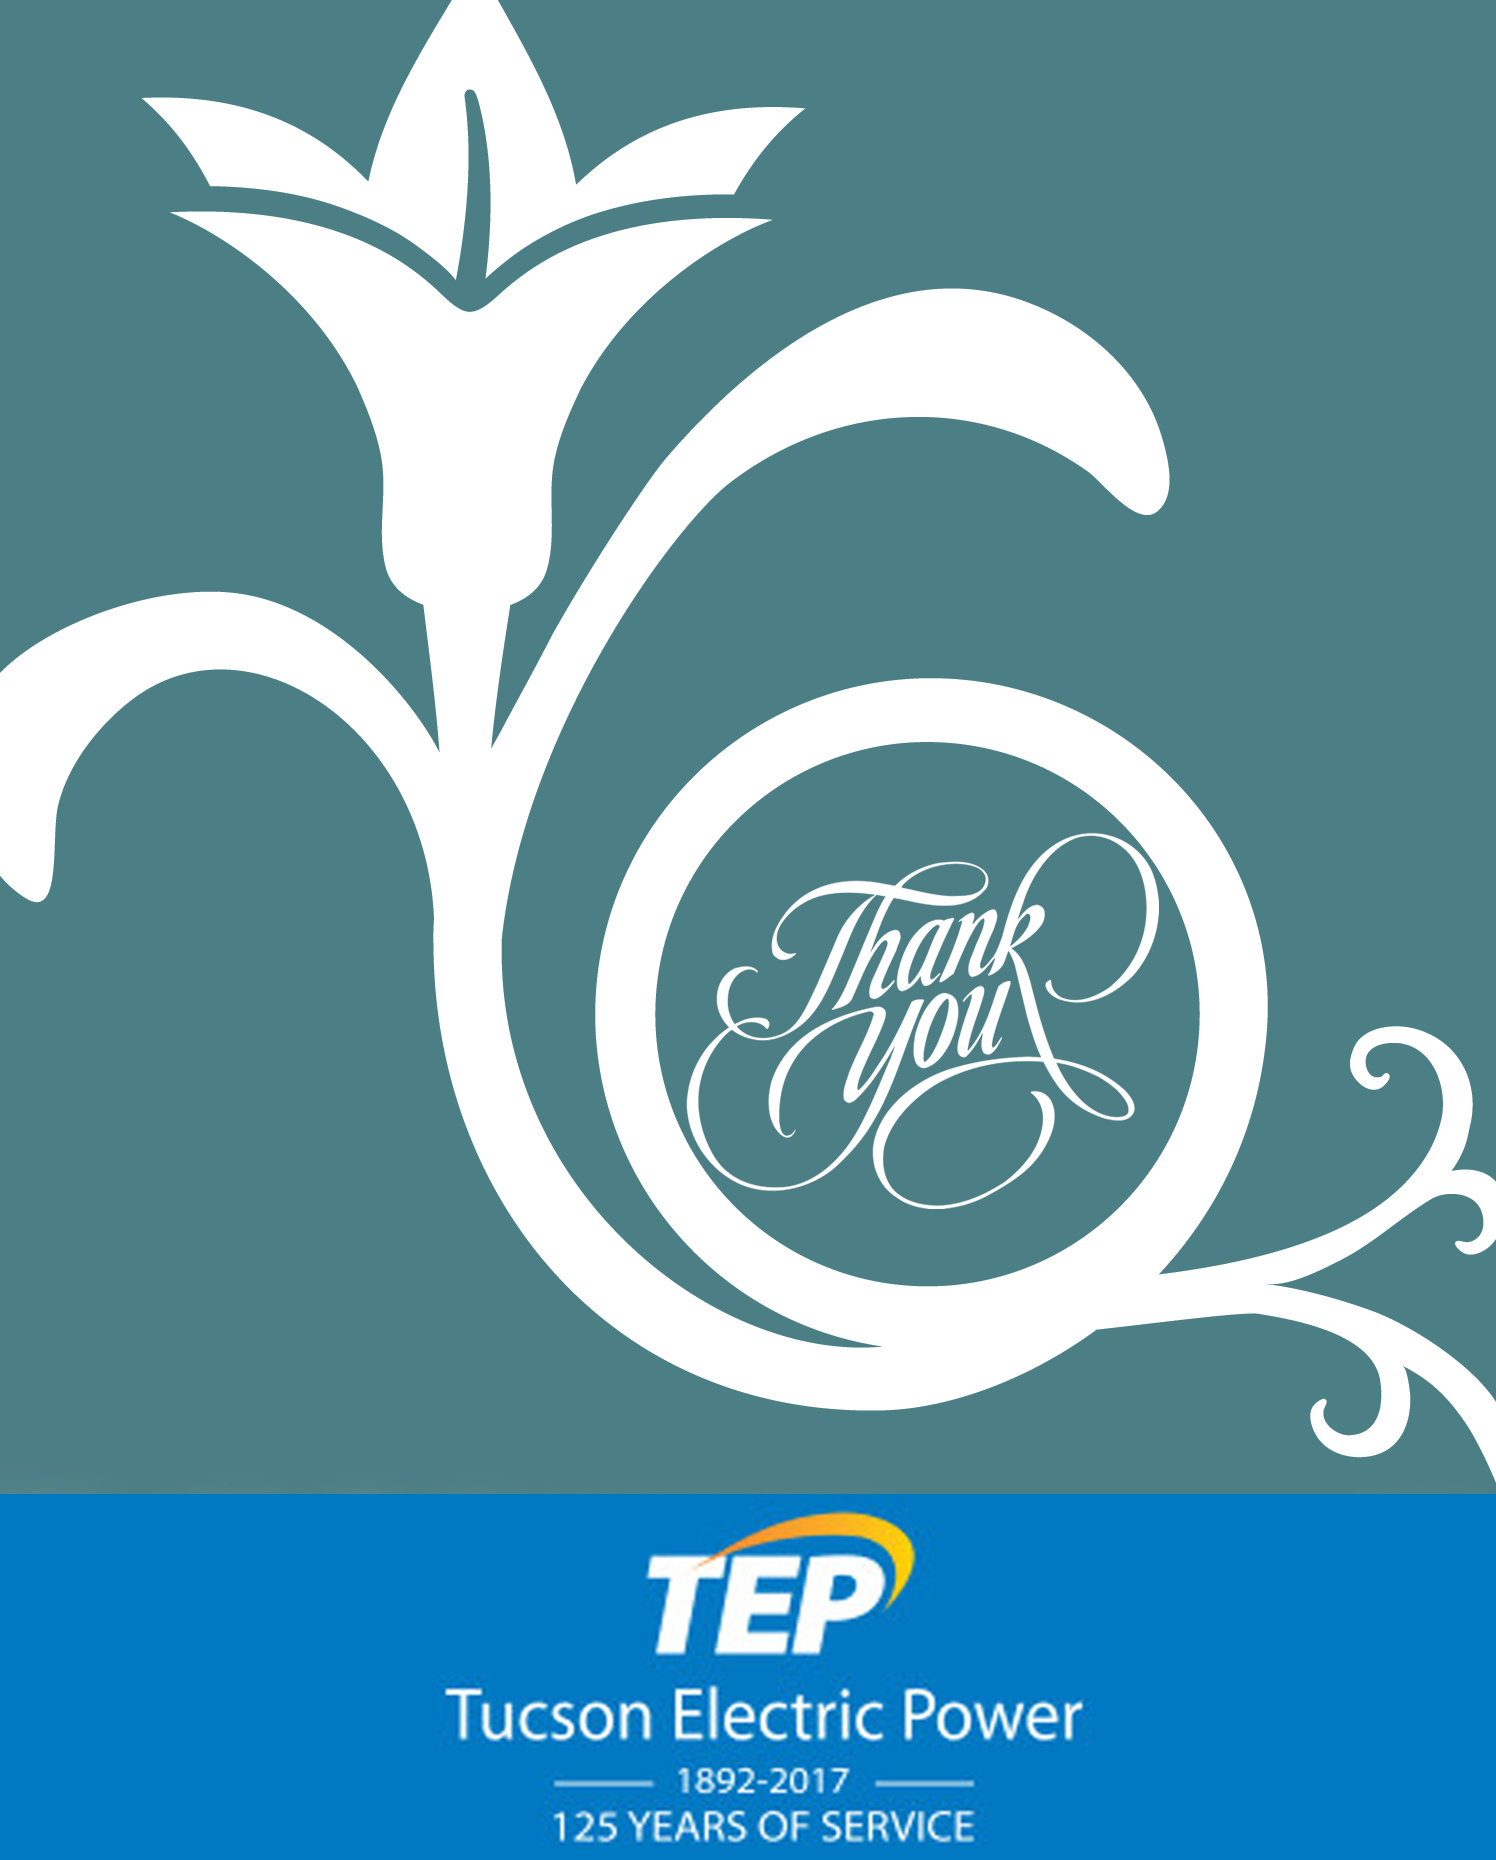 TEP's 'Powerful Choice Challenge' Results: Primavera Finishes in Fourth Place to Win $5,000